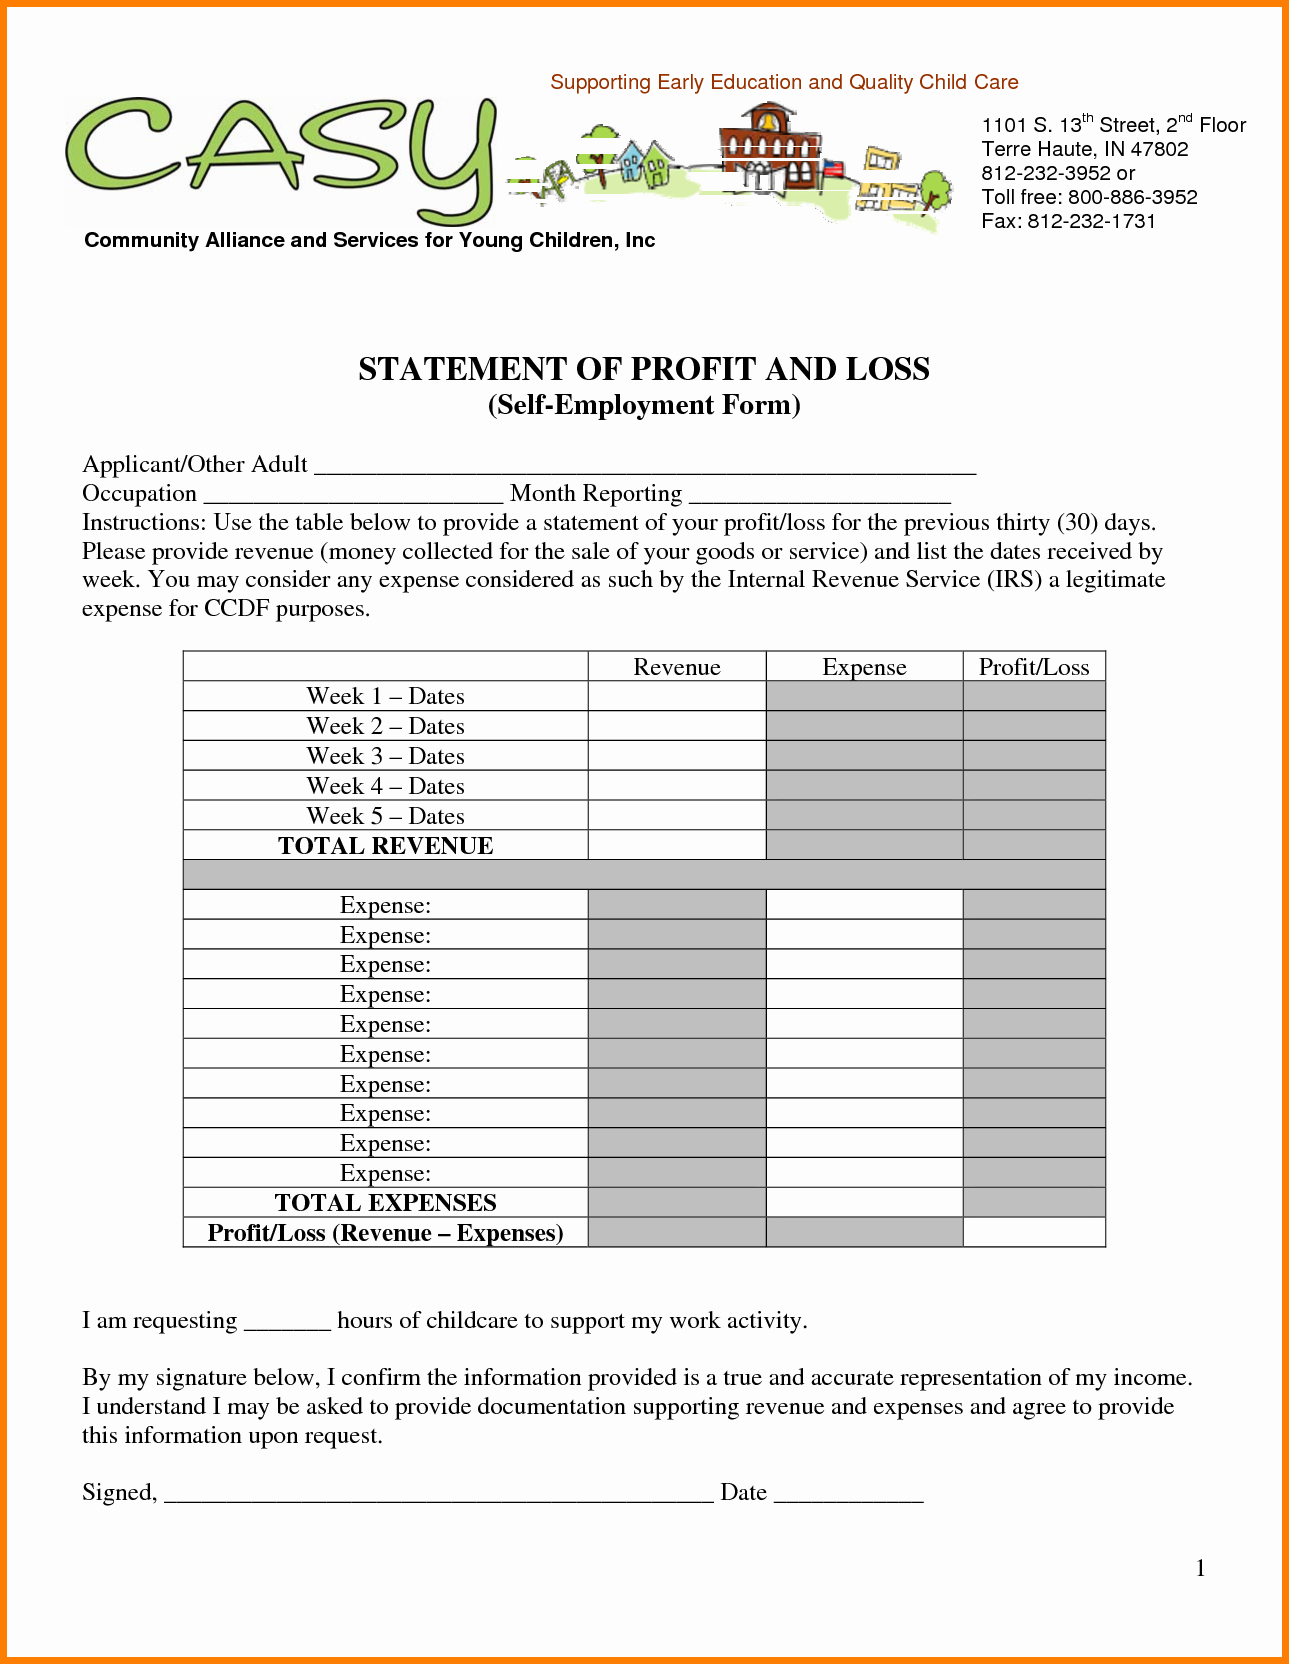 Profit And Loss Statements Statement Self Employed For Template R 03 In Profit And Loss Statement Template For Self Employed